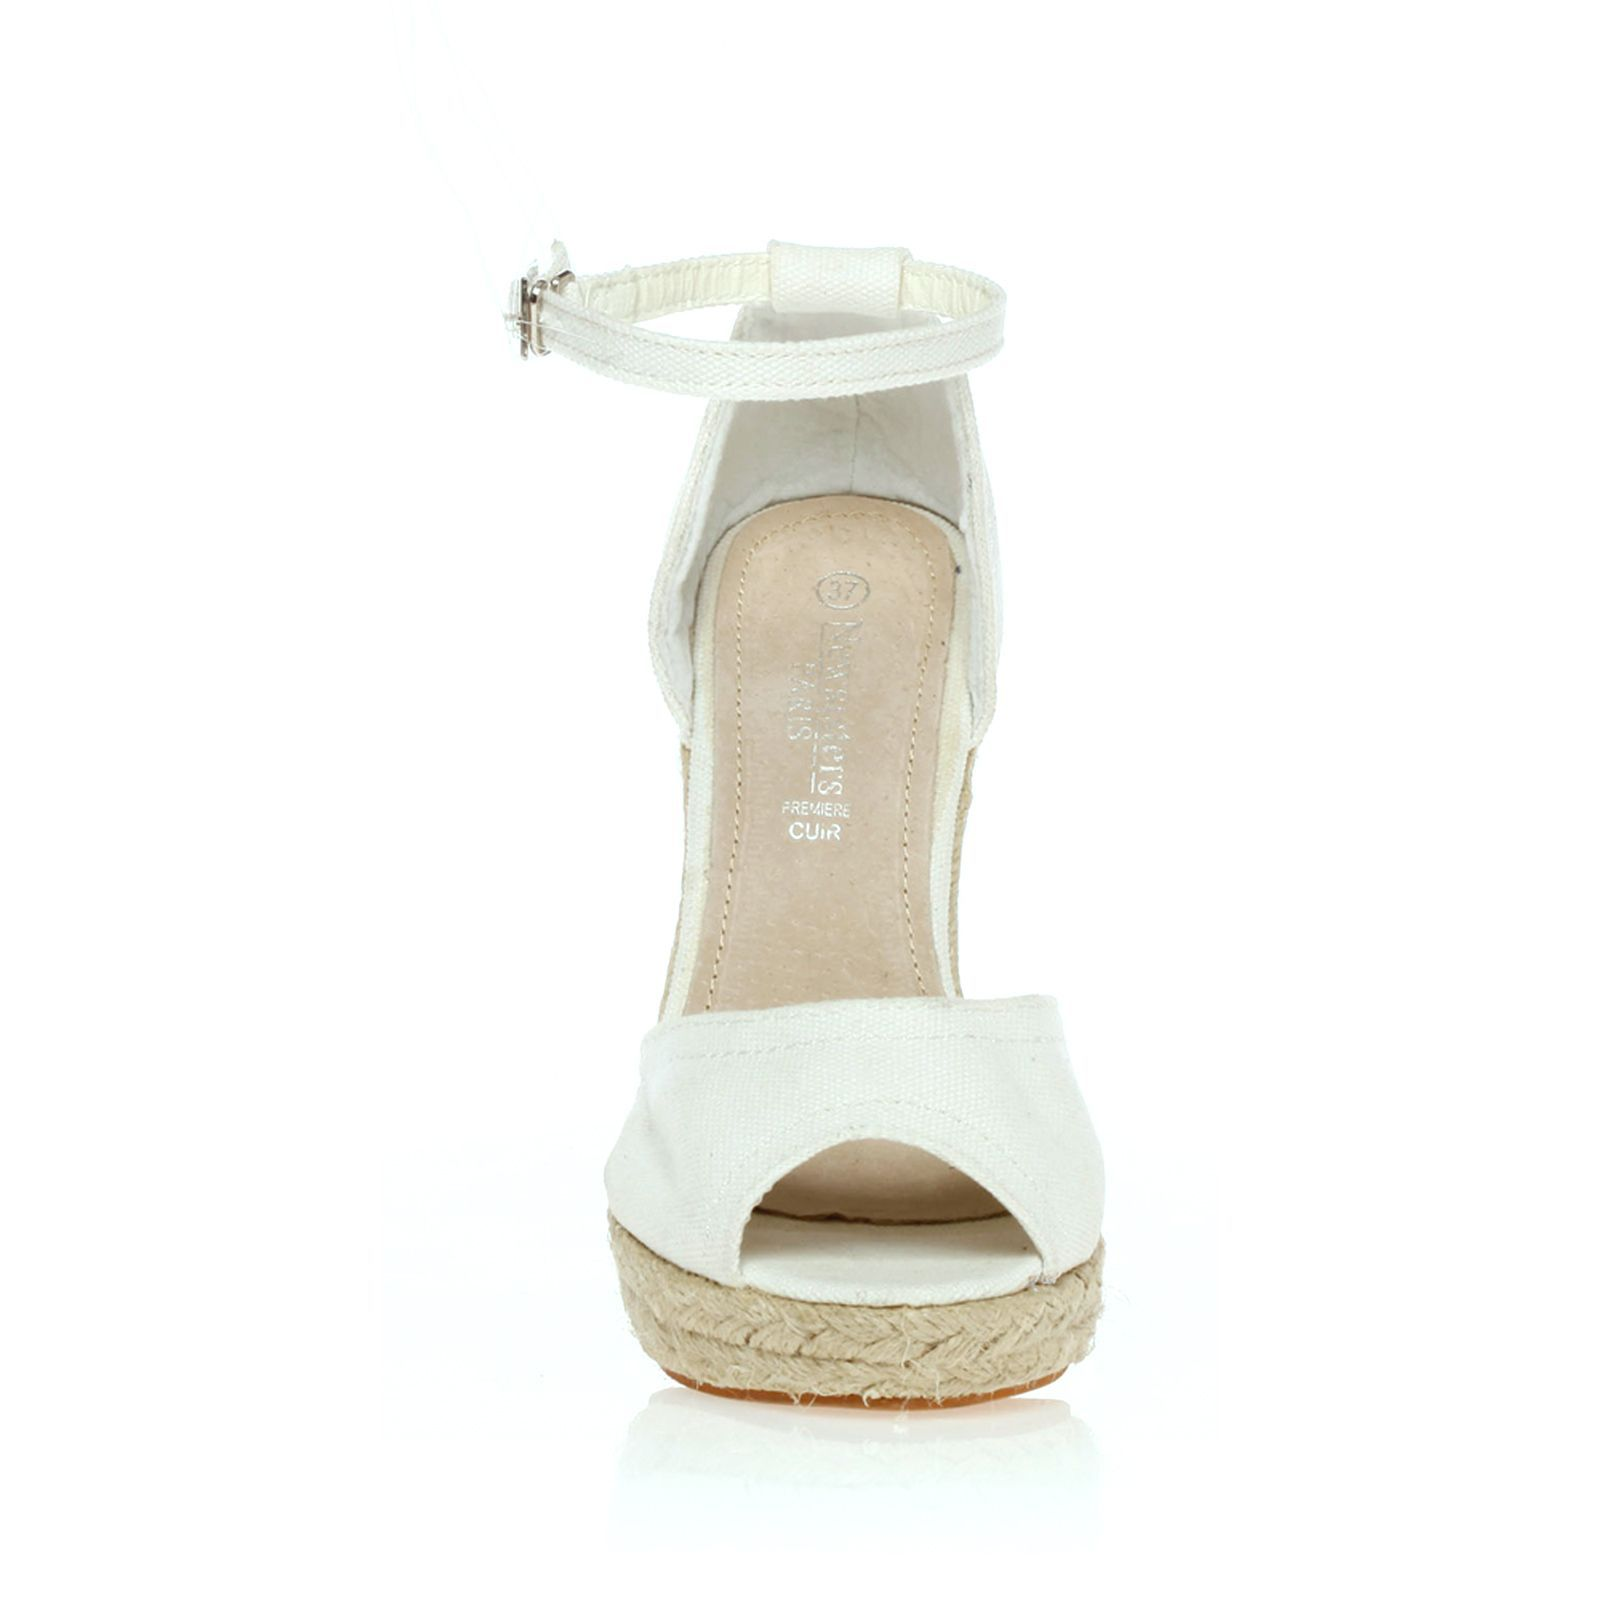 Newsisters Sandales compensées blanches   BrandAlley 80a4a06b8f2b